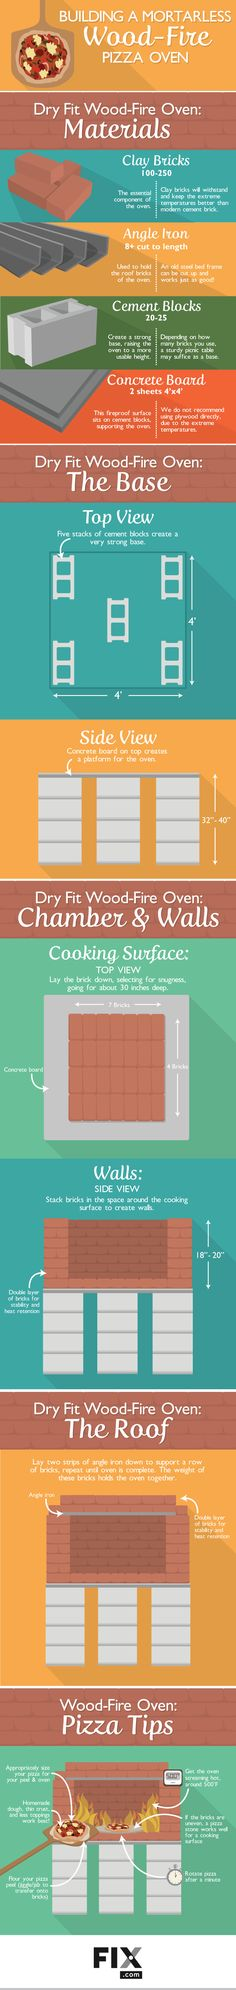 Building A Mortarless Wood-Fire Pizza Oven #infographic #Pizza #Food